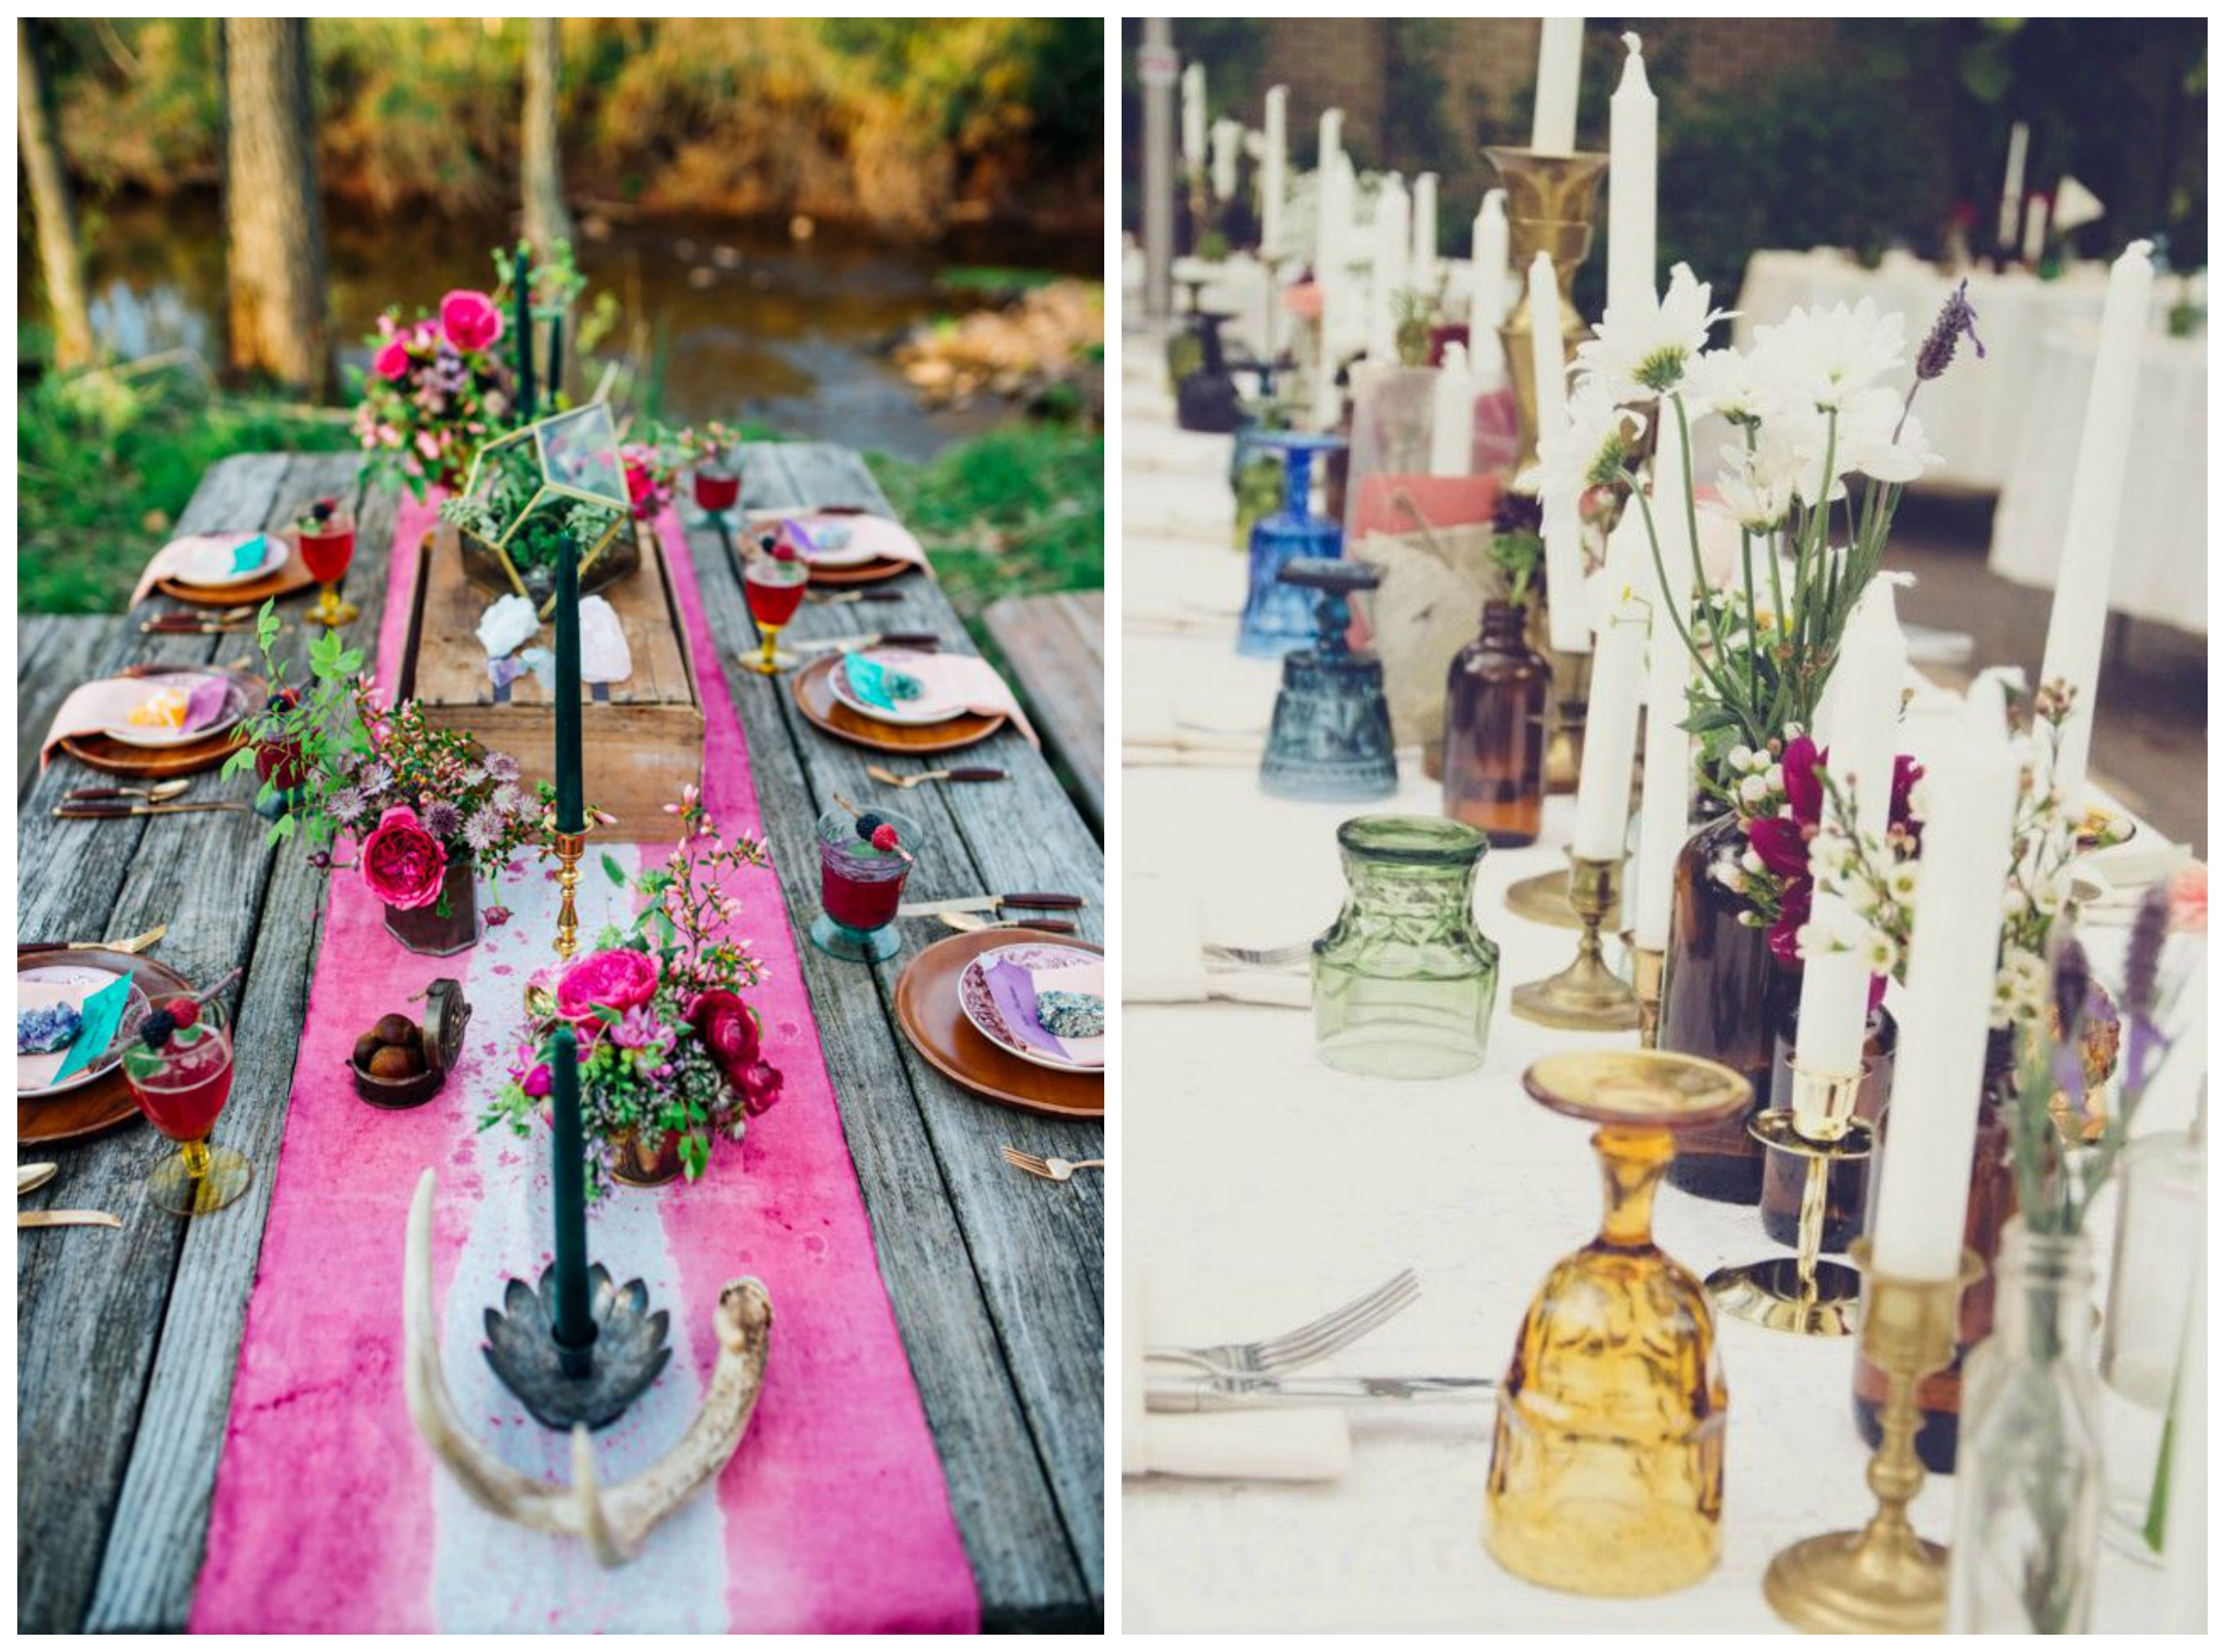 Decoraciones Hippies Tendencias En Decoracion 2016 En El Pais De Las Bodas